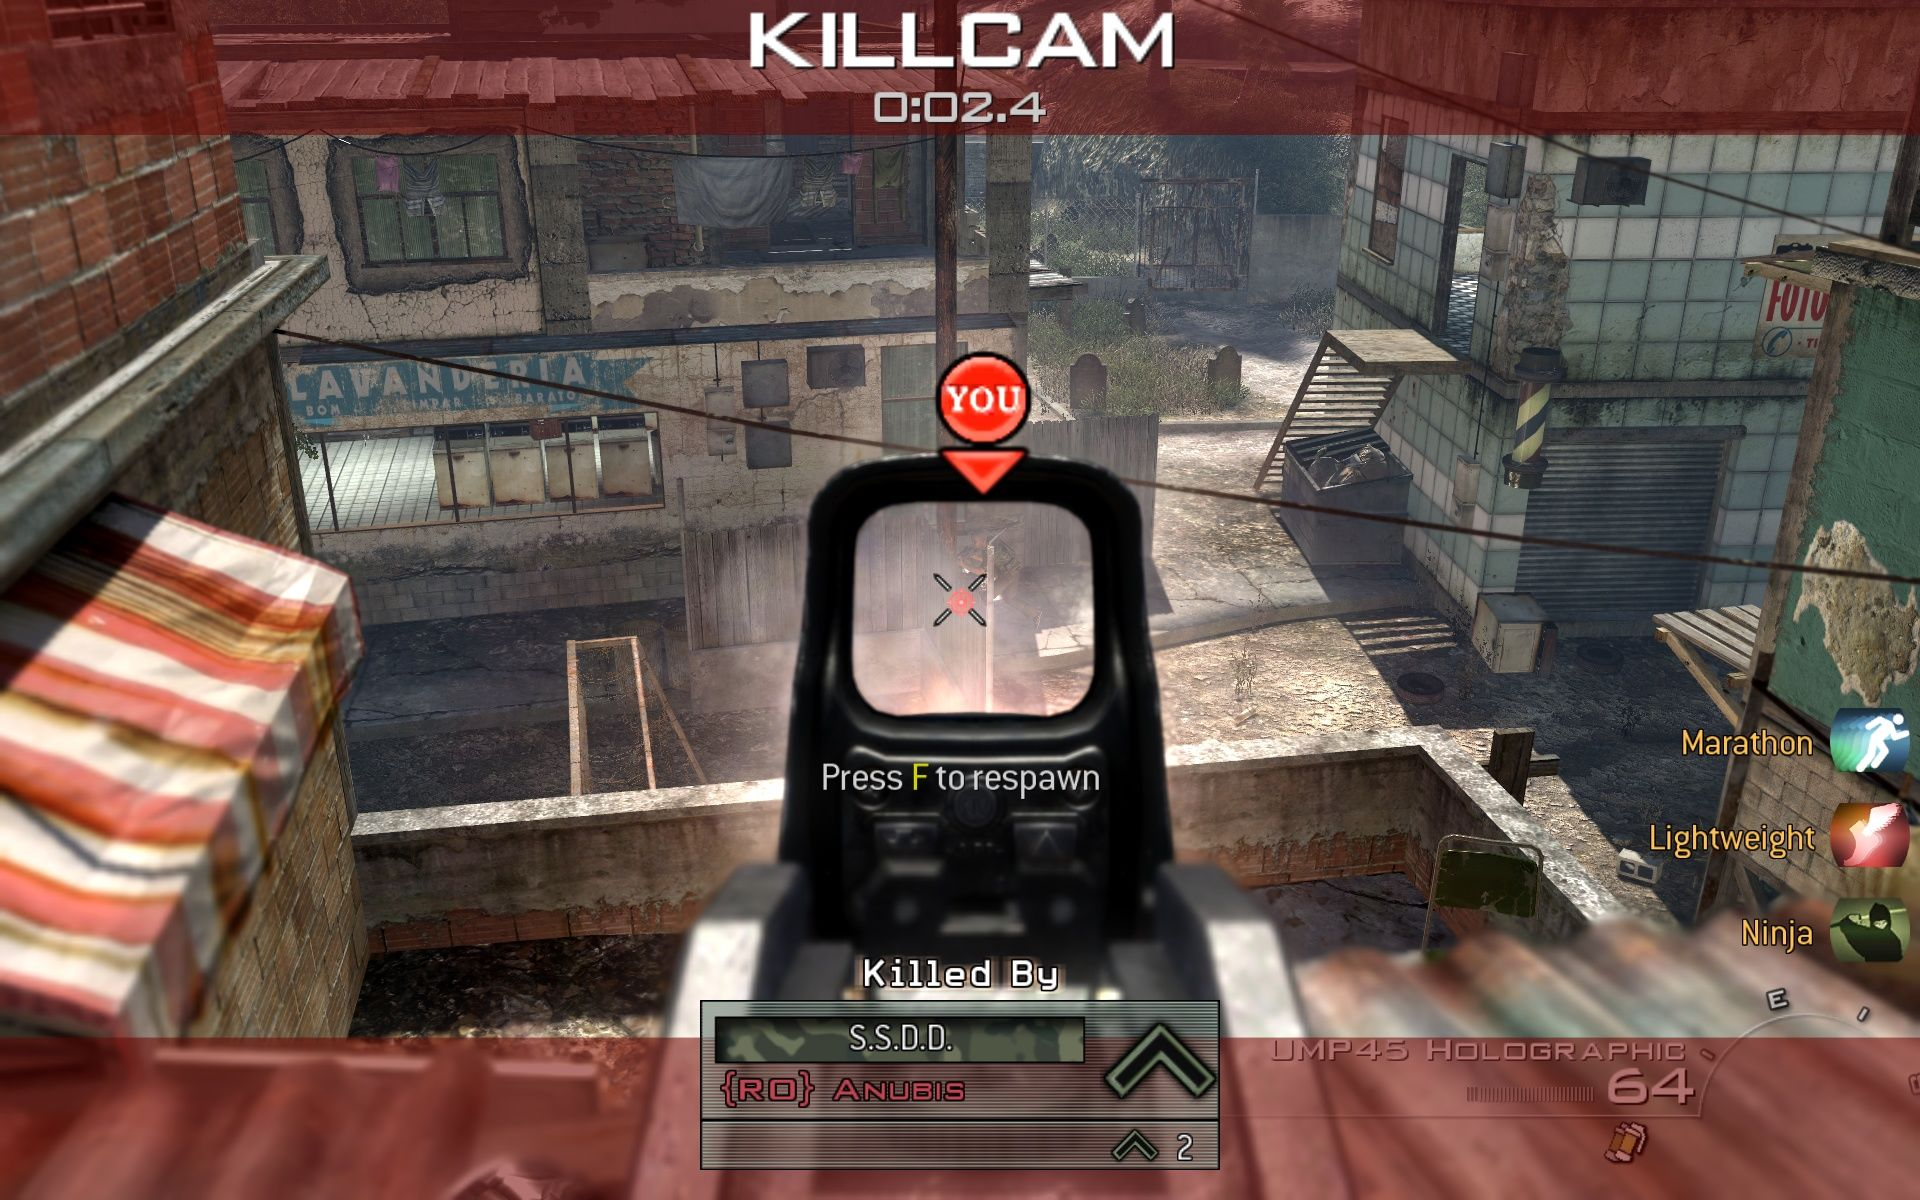 Call of Duty: Modern Warfare 2 Windows The killcam is back always showing you how bad you played.